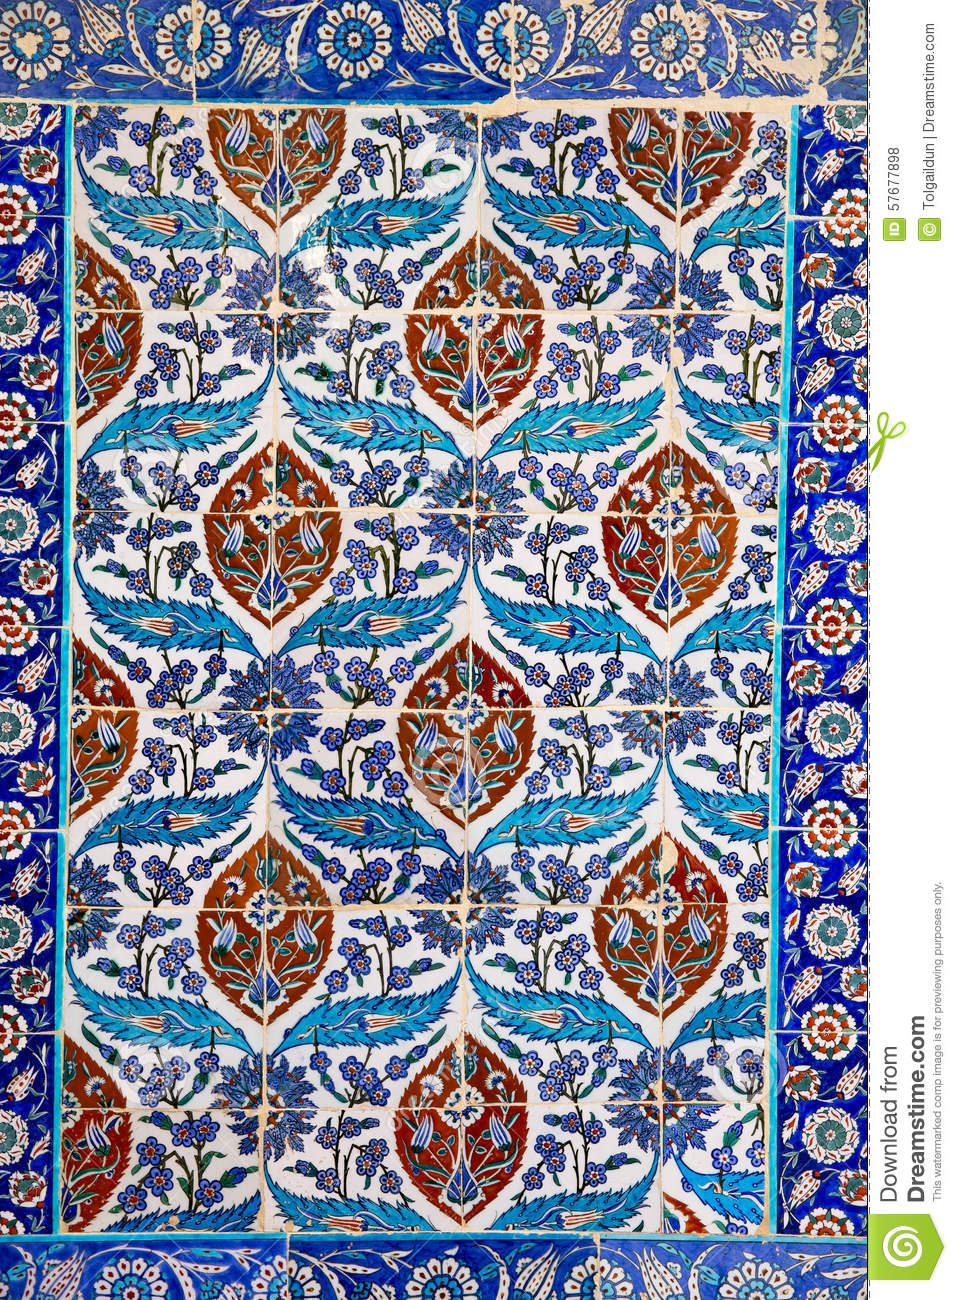 Traditional Turkish Floral Ceramic Ornament On Tiles Stock ...